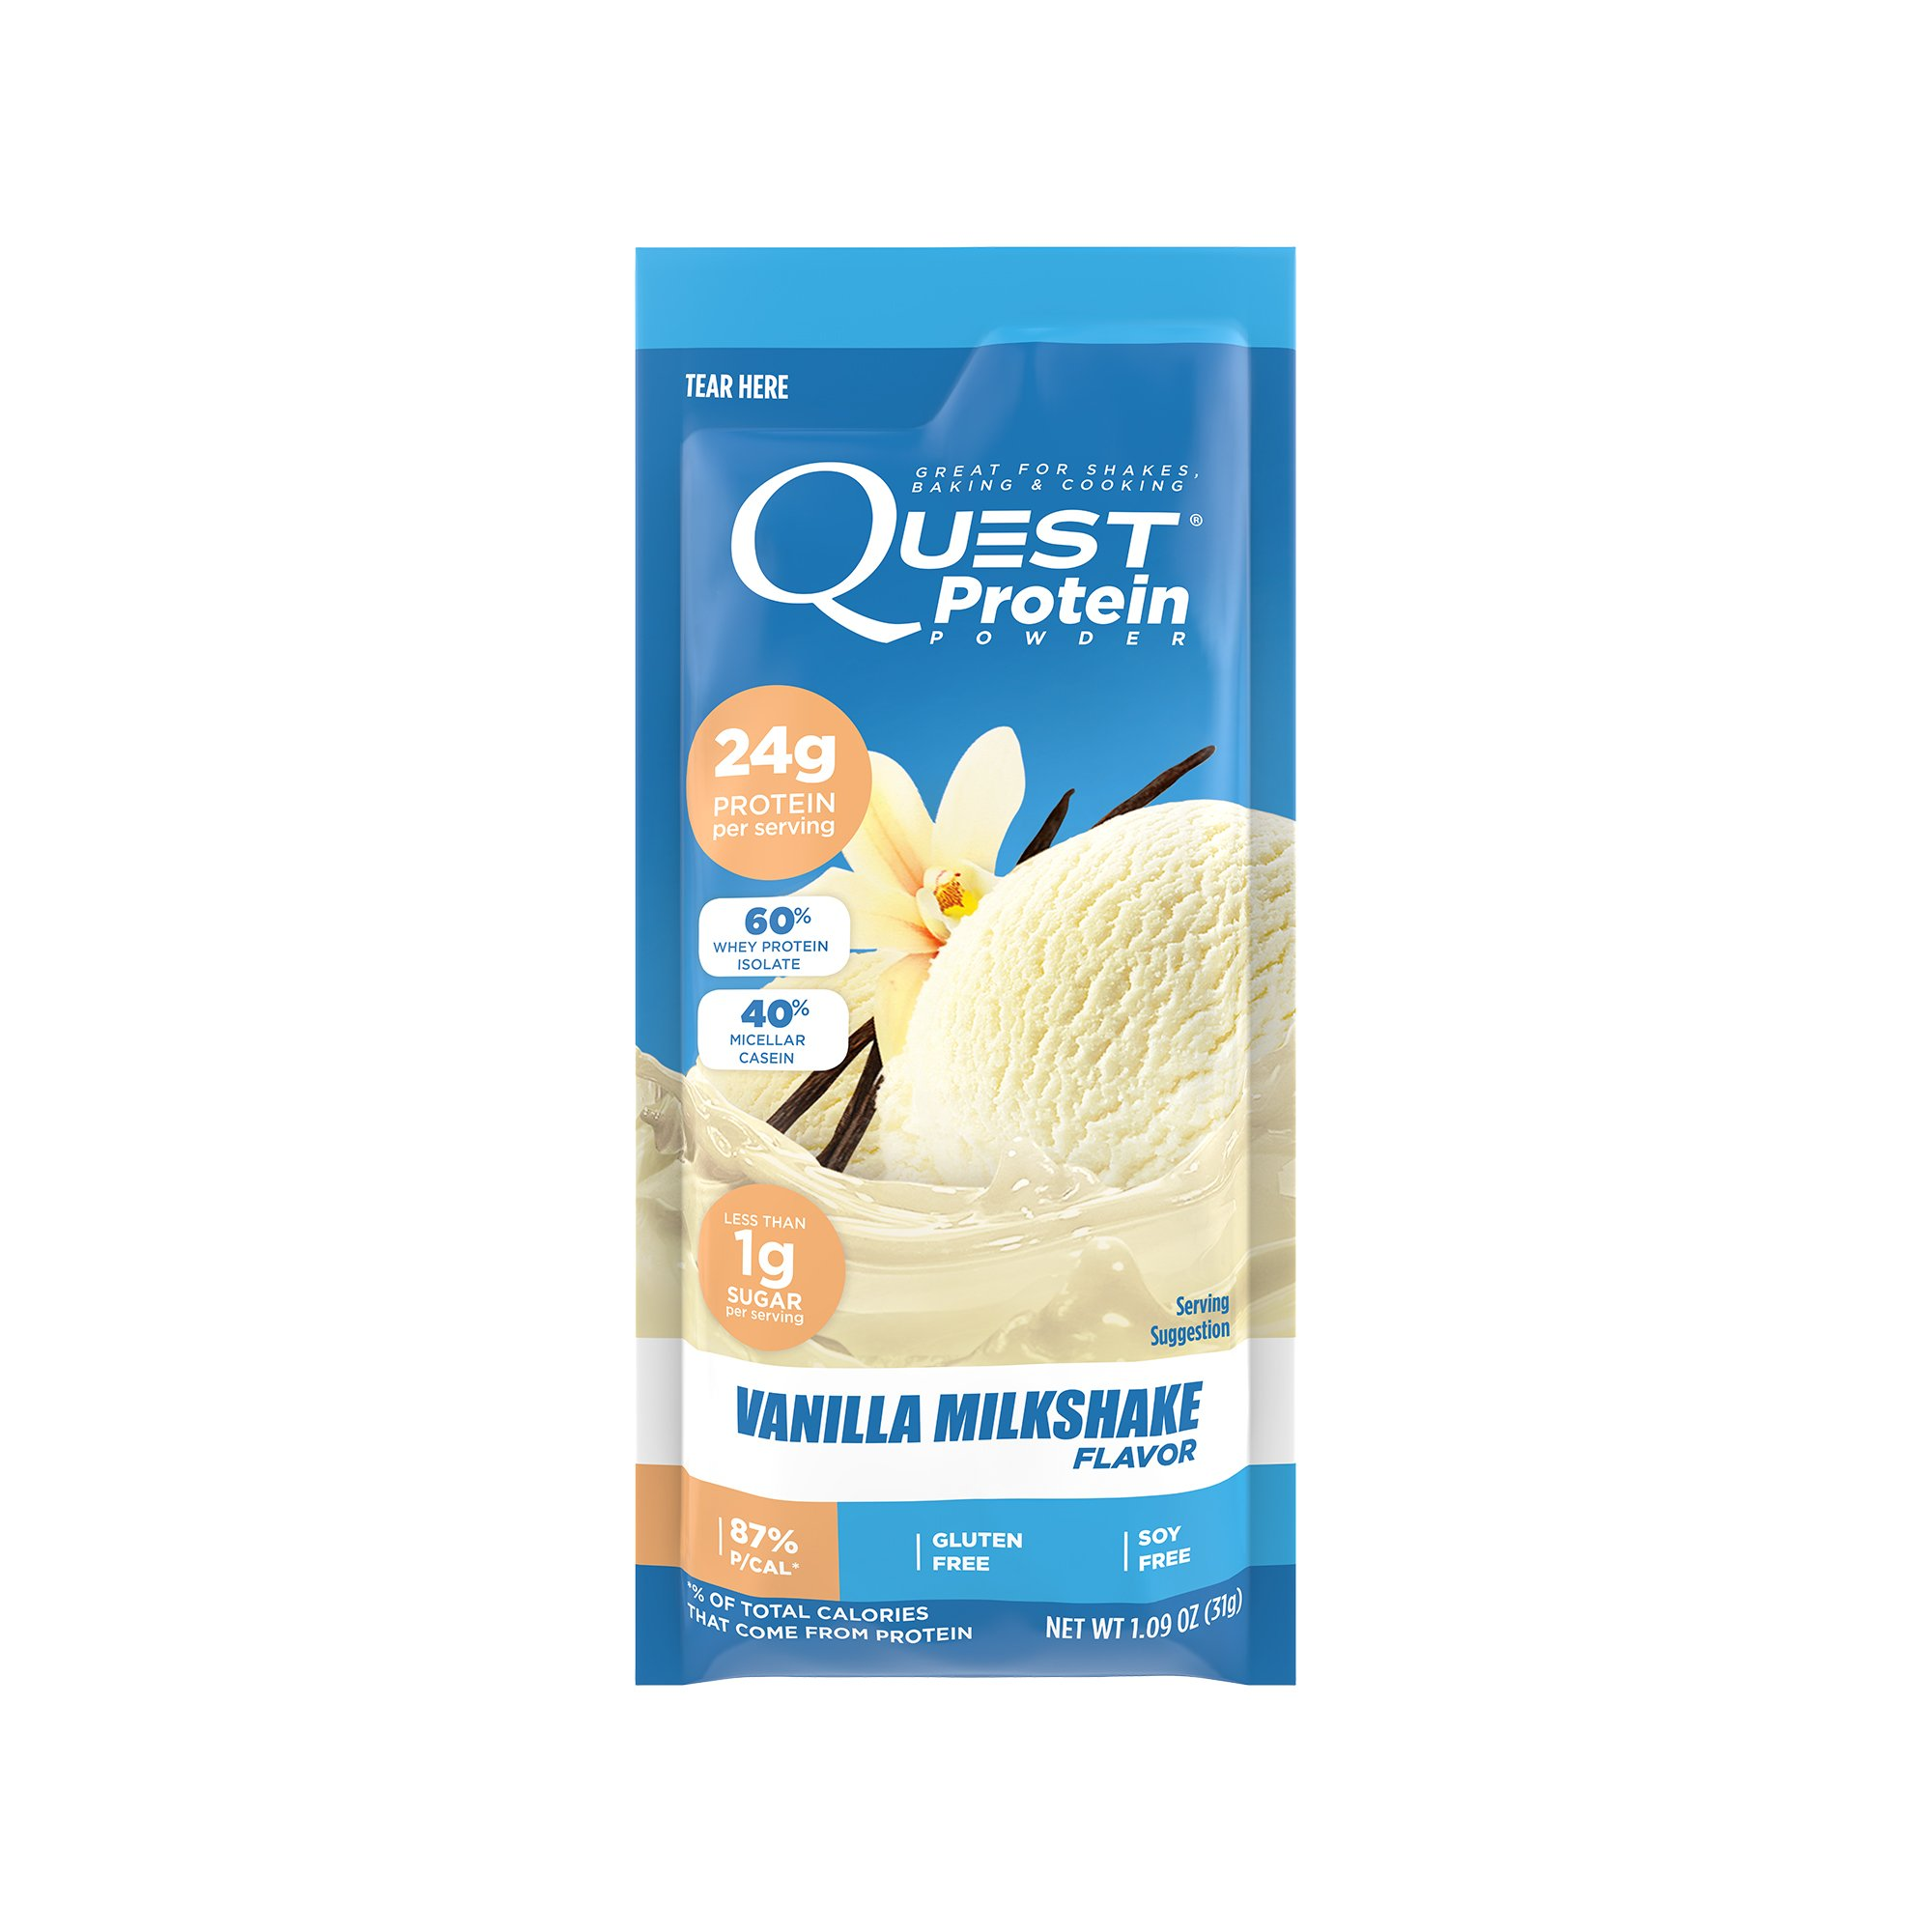 Quest Nutrition Protein Powder, Vanilla Milkshake, 22g Protein, 3g Net Carbs, 88% P/Cals, 0.99oz Packet, 12 Count, High Protein, Low Carb, Gluten Free, Soy Free, Packaging May Vary